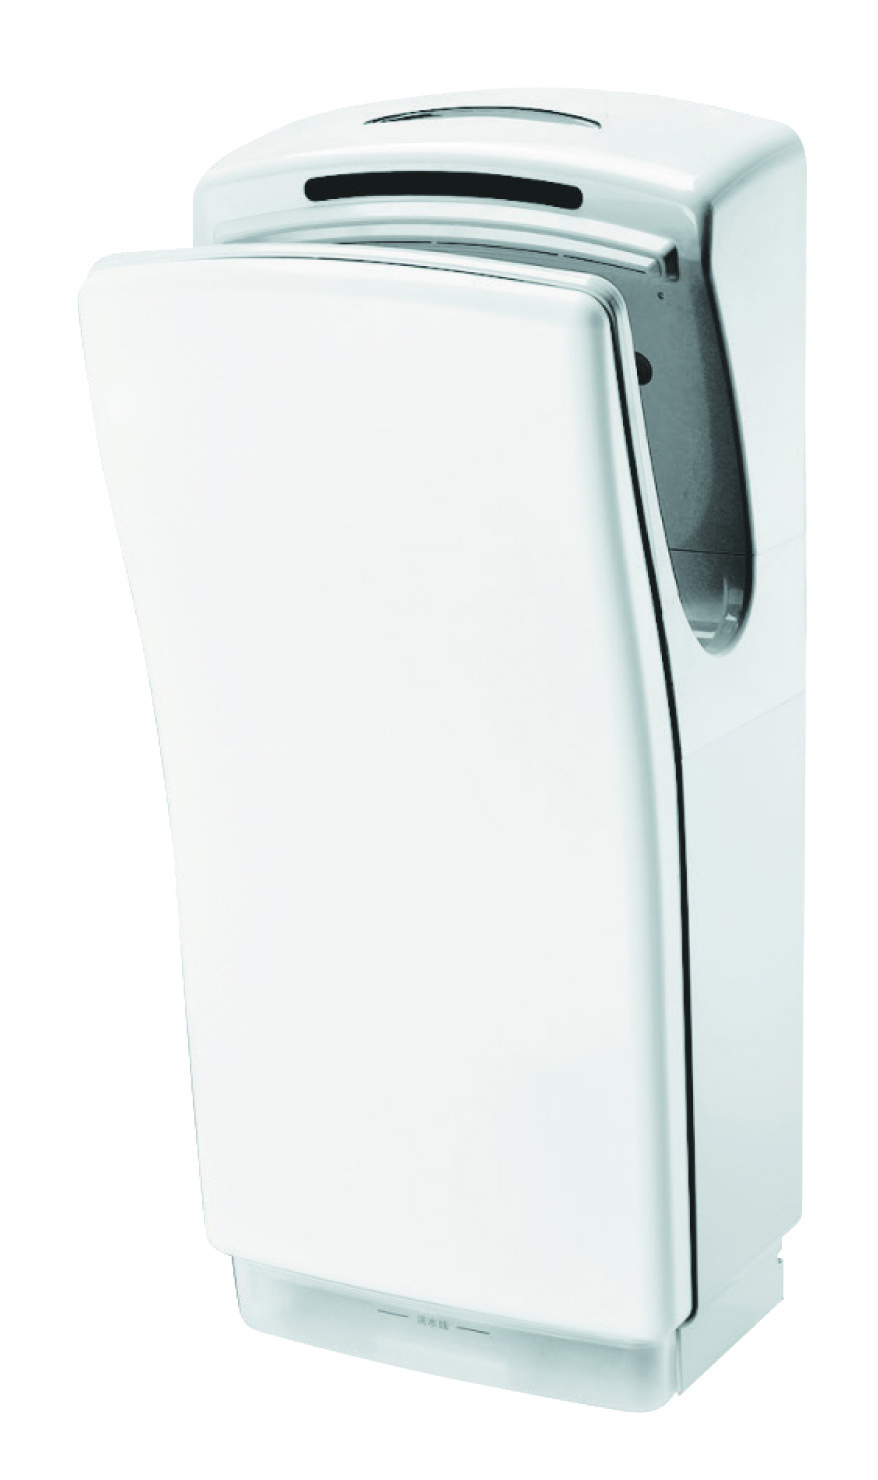 hpm jet air hand dryer by legrand nz - Air Hand Dryers